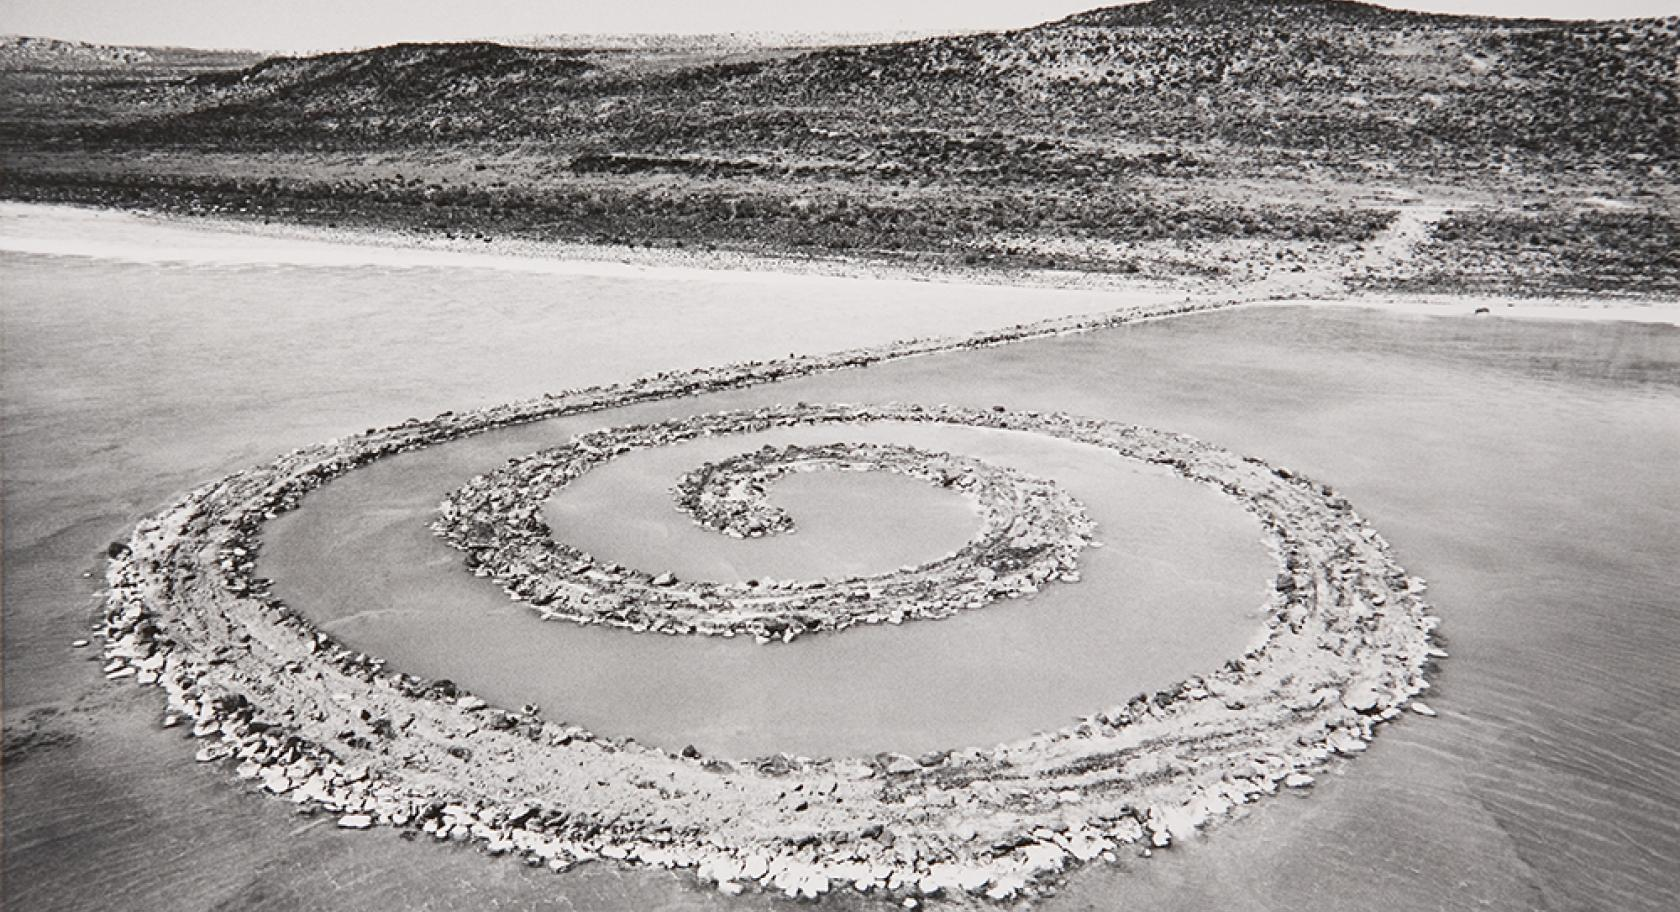 Robert Smithson (American, 1938–1973), Spiral Jetty, 1970, Rozel Point, Great Salt Lake, Utah, black basalt rock, salt crystals, earth, and water, 1,500 ft. long and approximately 15 ft. wide. © Holt/Smithson Foundation and Dia Art Foundation, licensed by VAGA, New York.